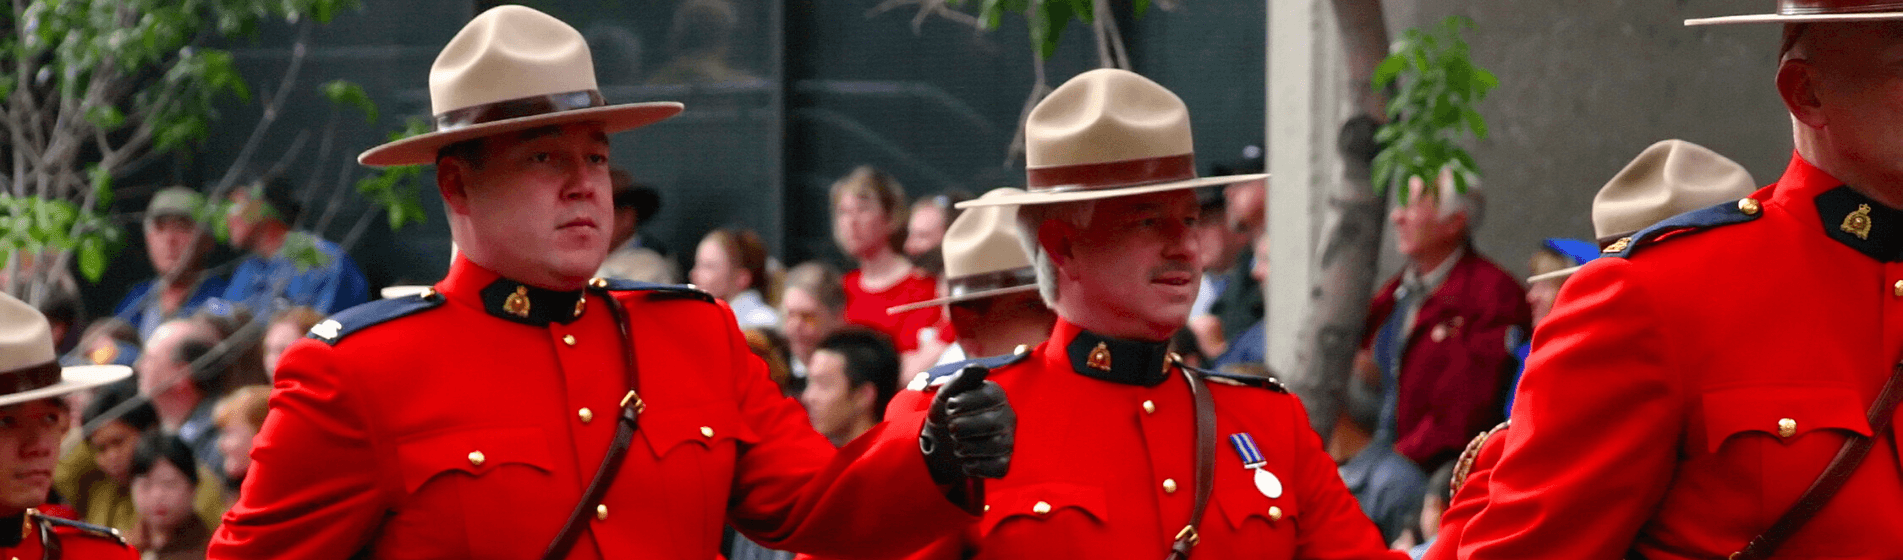 Canada's second class citizens and the culture of fear